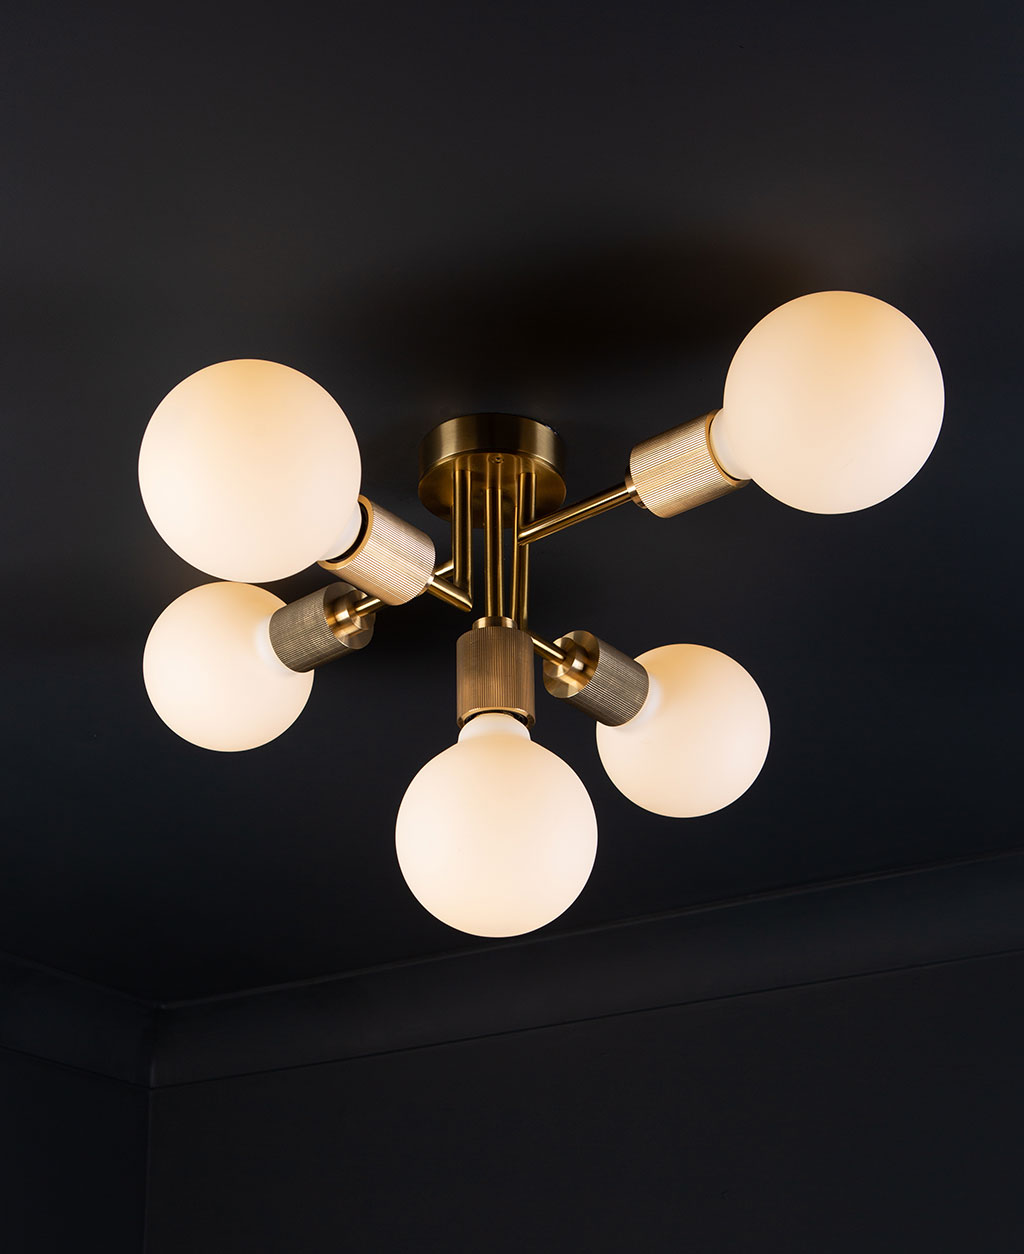 Connaught brass ceiling light